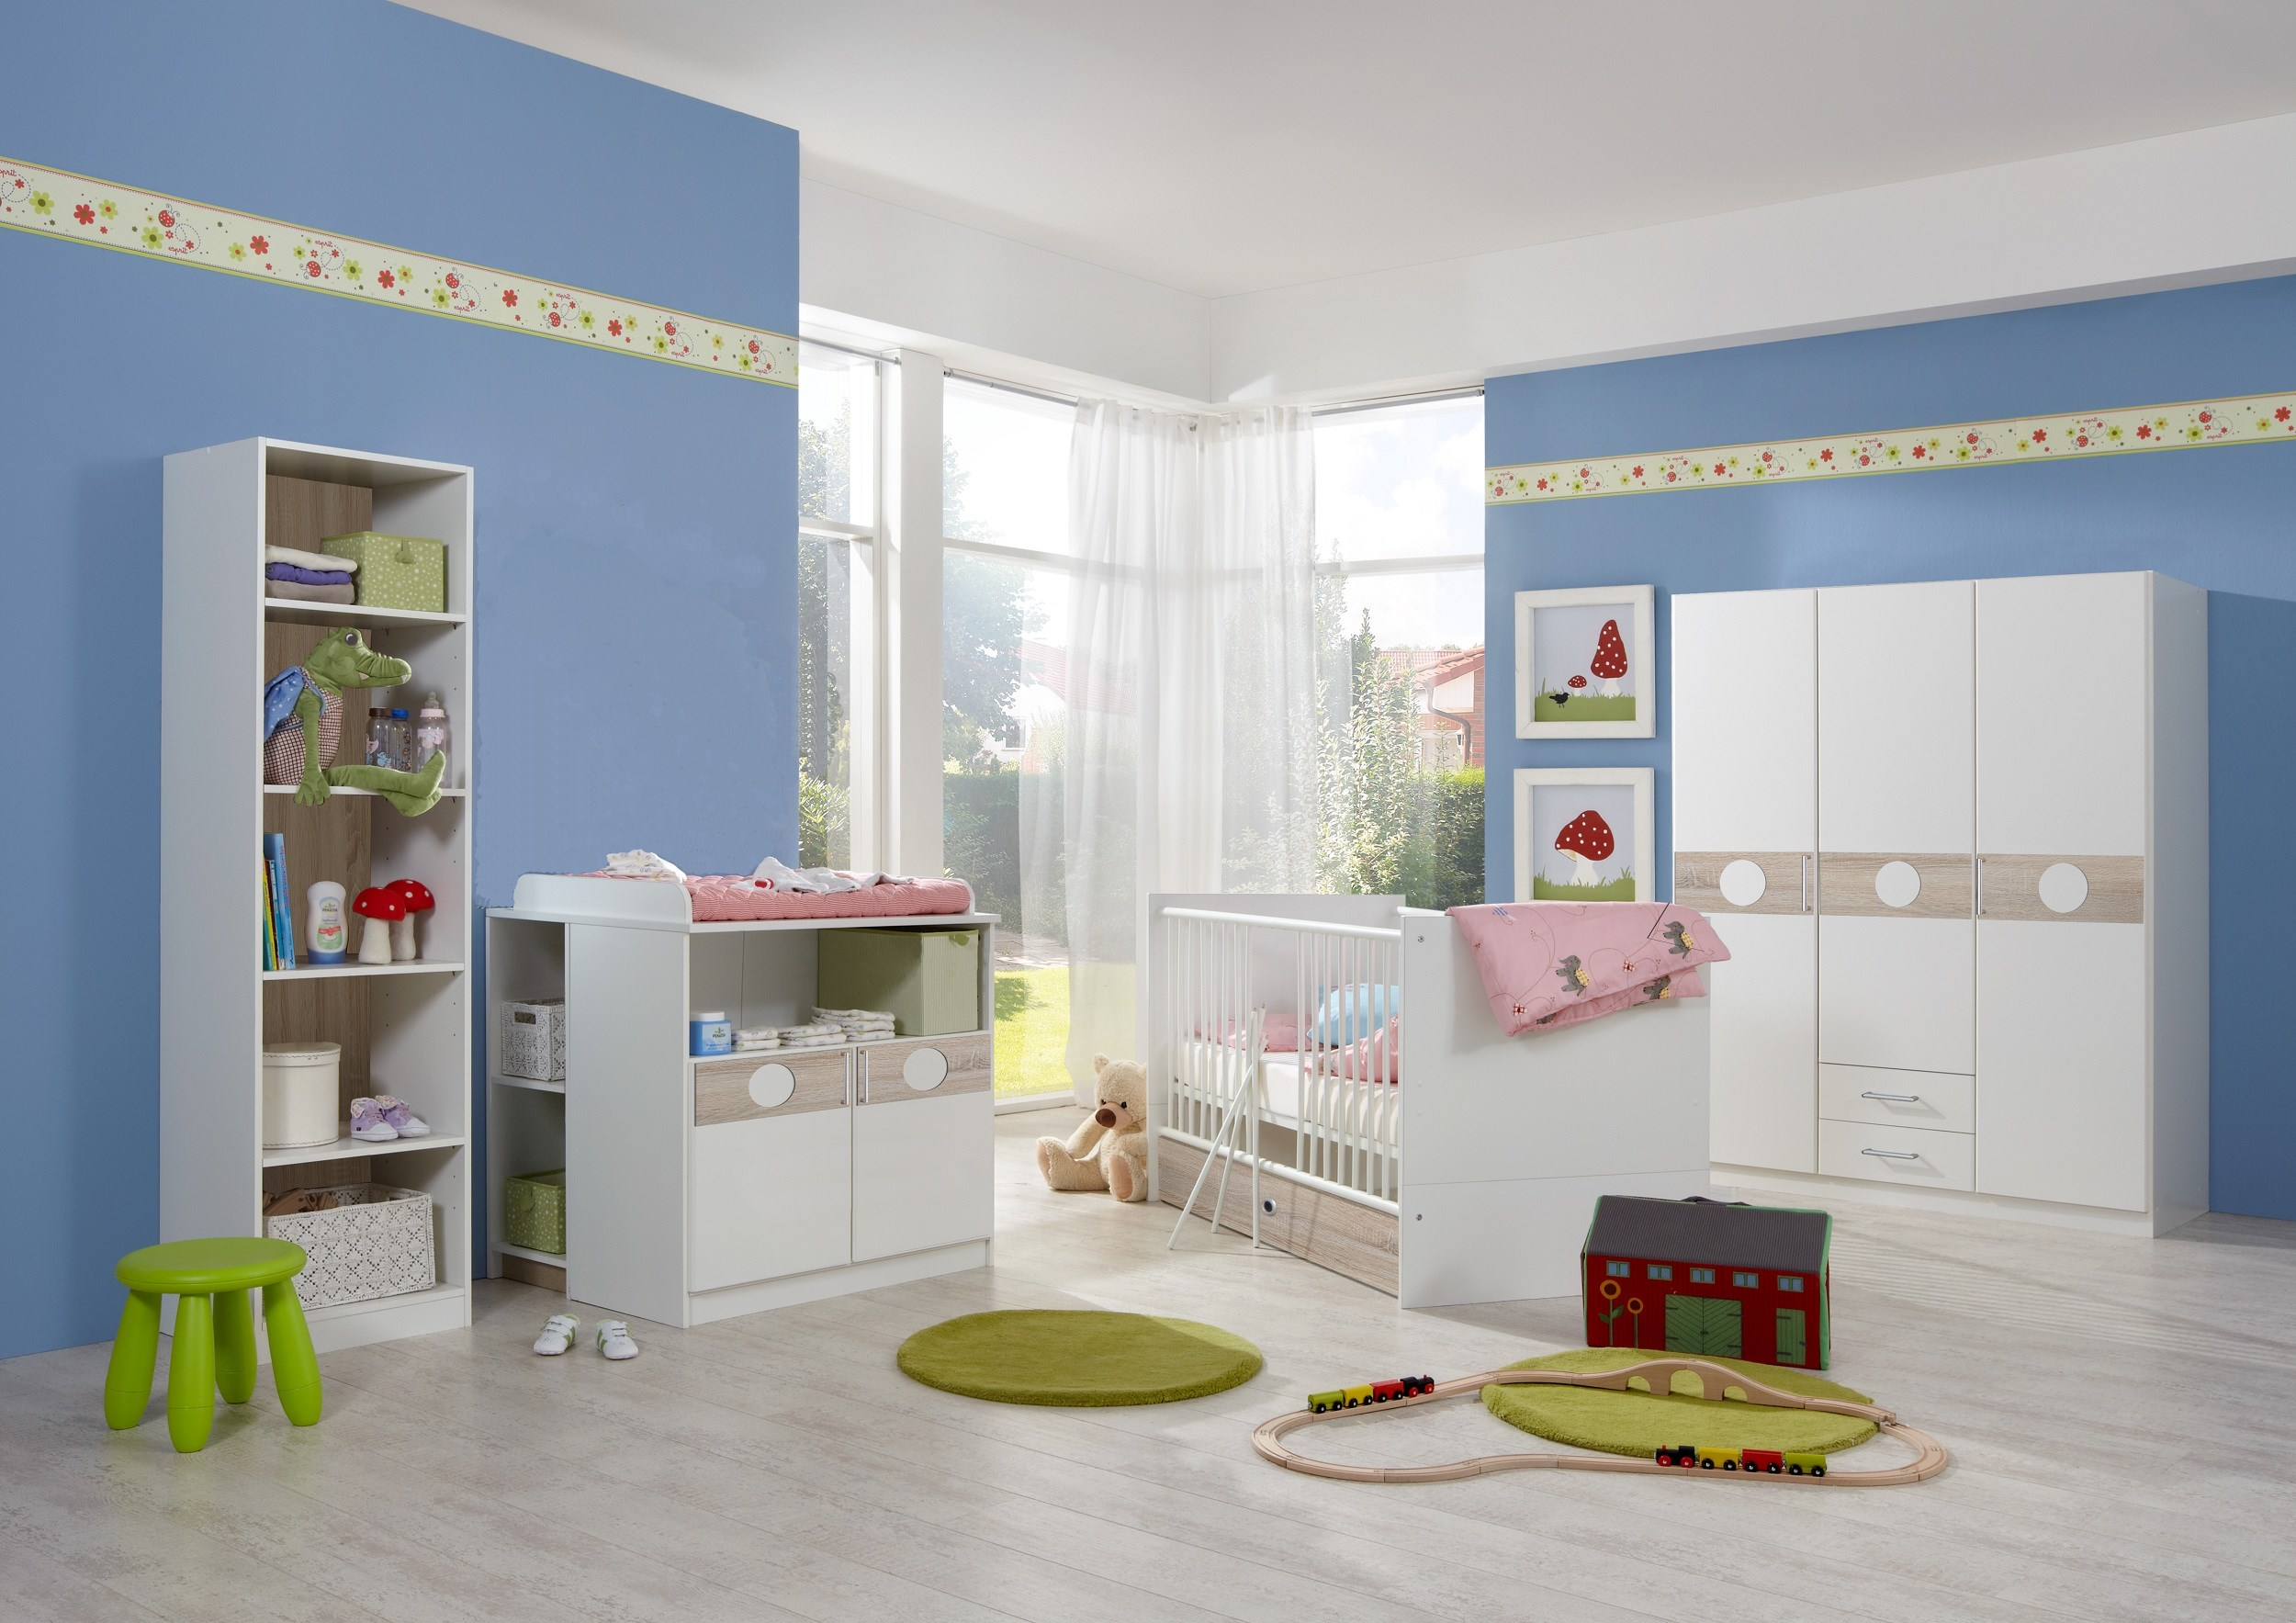 babyzimmer set kimba 6tlg komplett bett wickelkommode gr schrank regal eiche s ebay. Black Bedroom Furniture Sets. Home Design Ideas